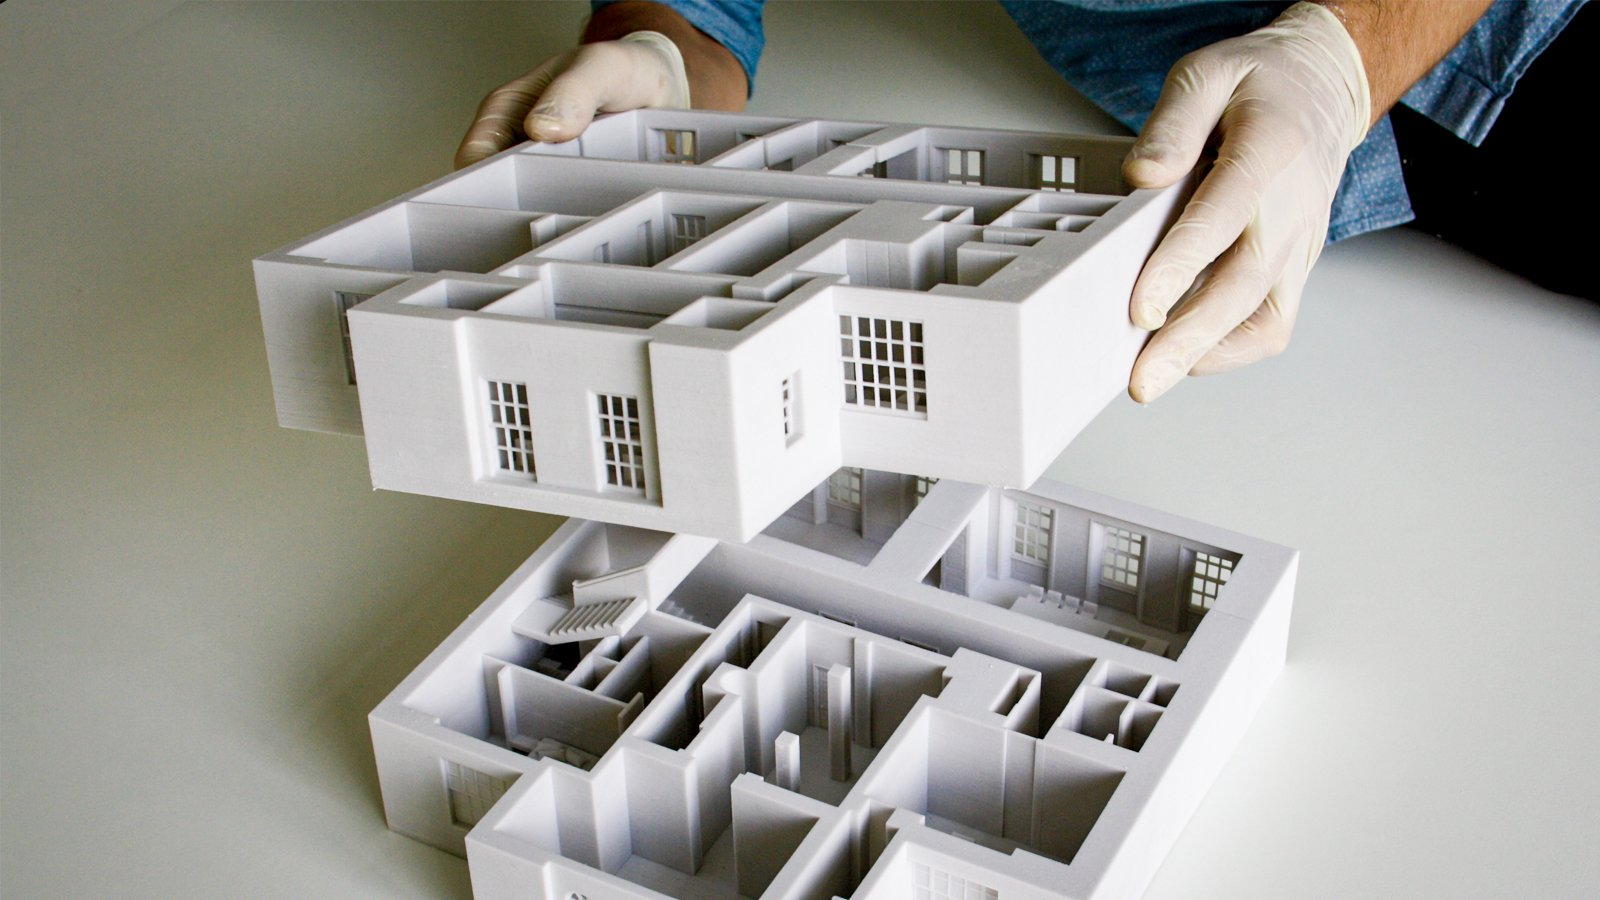 How to Make a 3D Printed Architecture Model | All3DP Pro